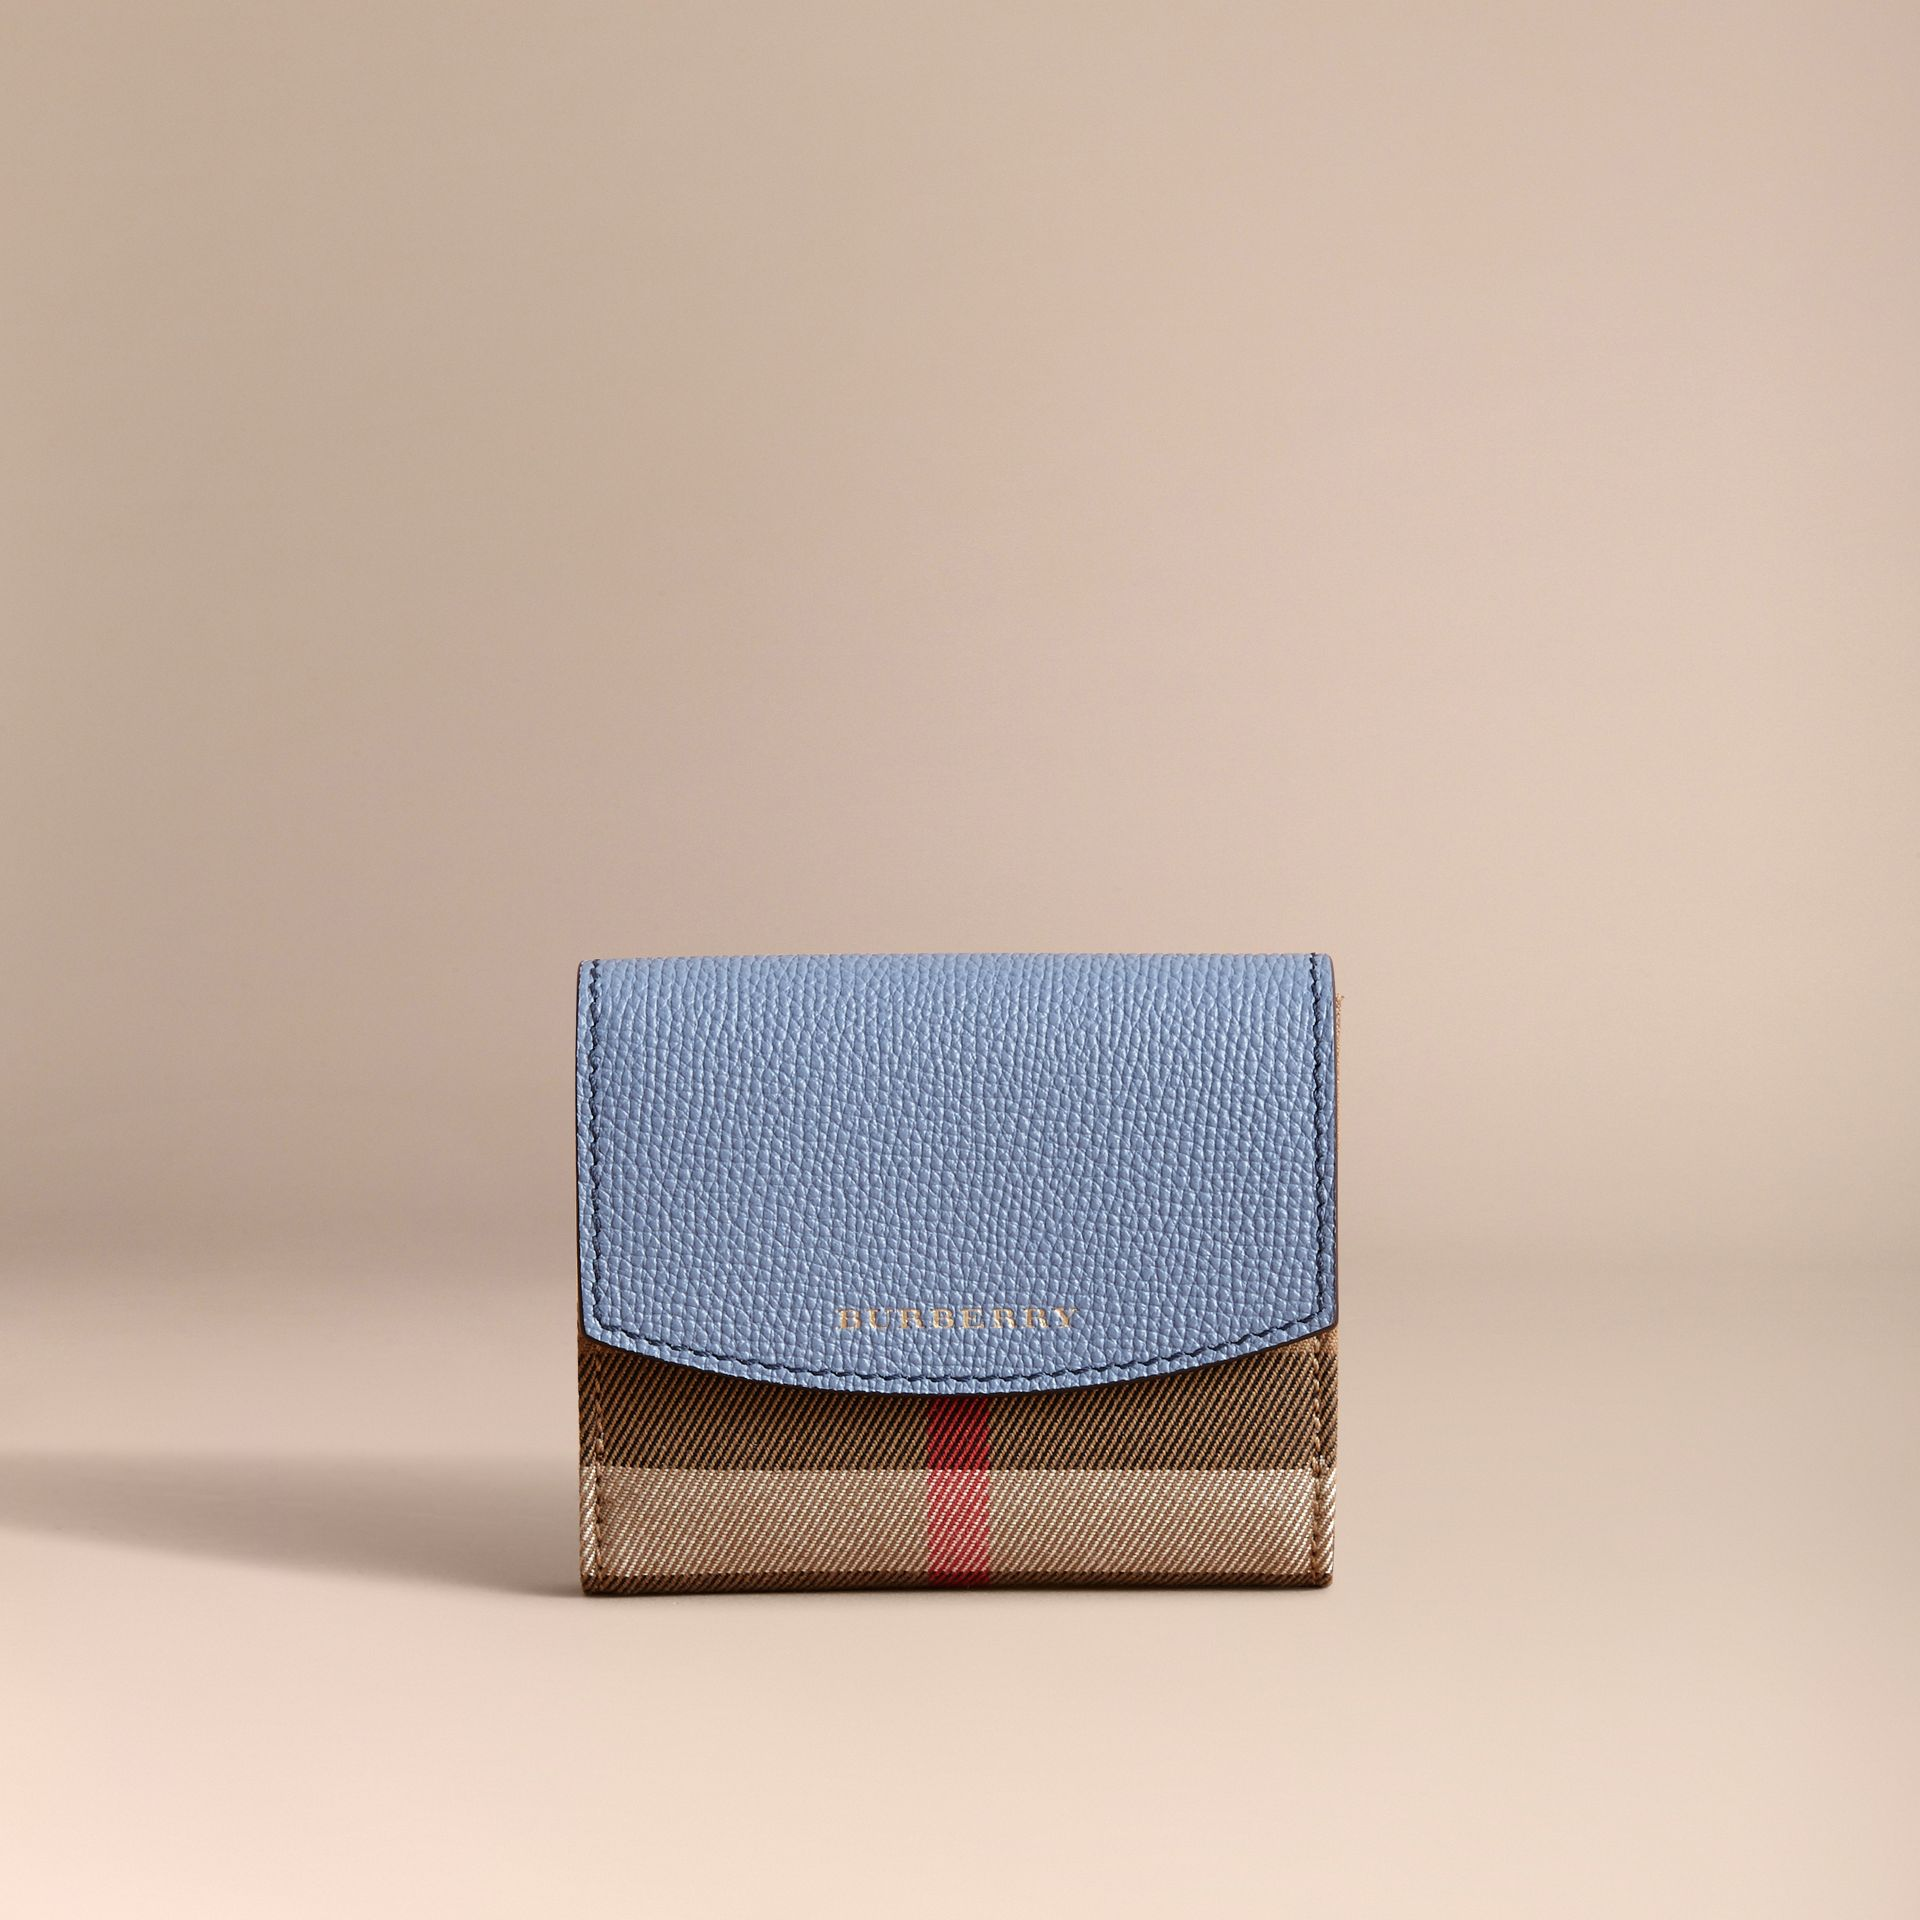 House Check and Leather Wallet in Slate Blue - Women | Burberry - gallery image 6